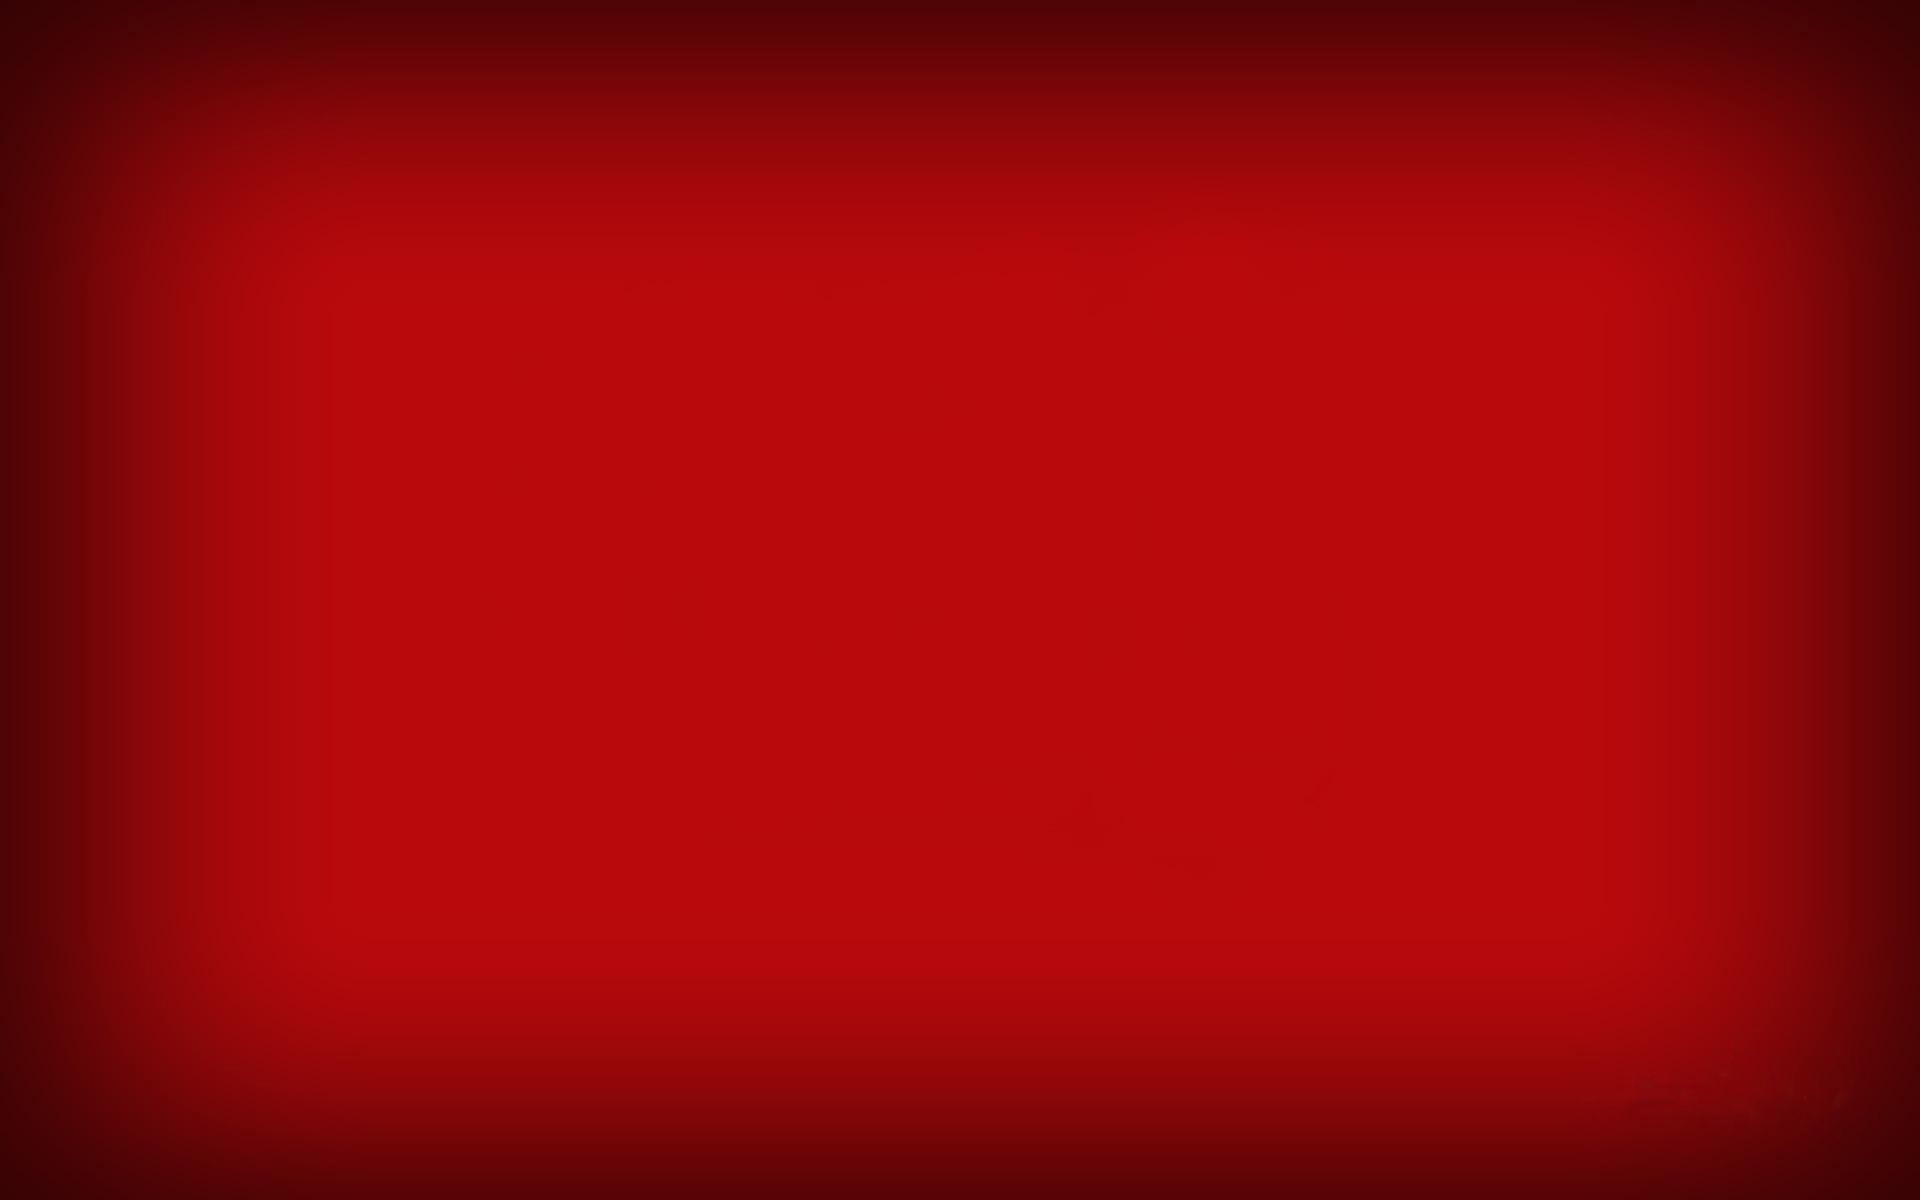 1920x1200 windows-7-solid-color-background--red-computer-